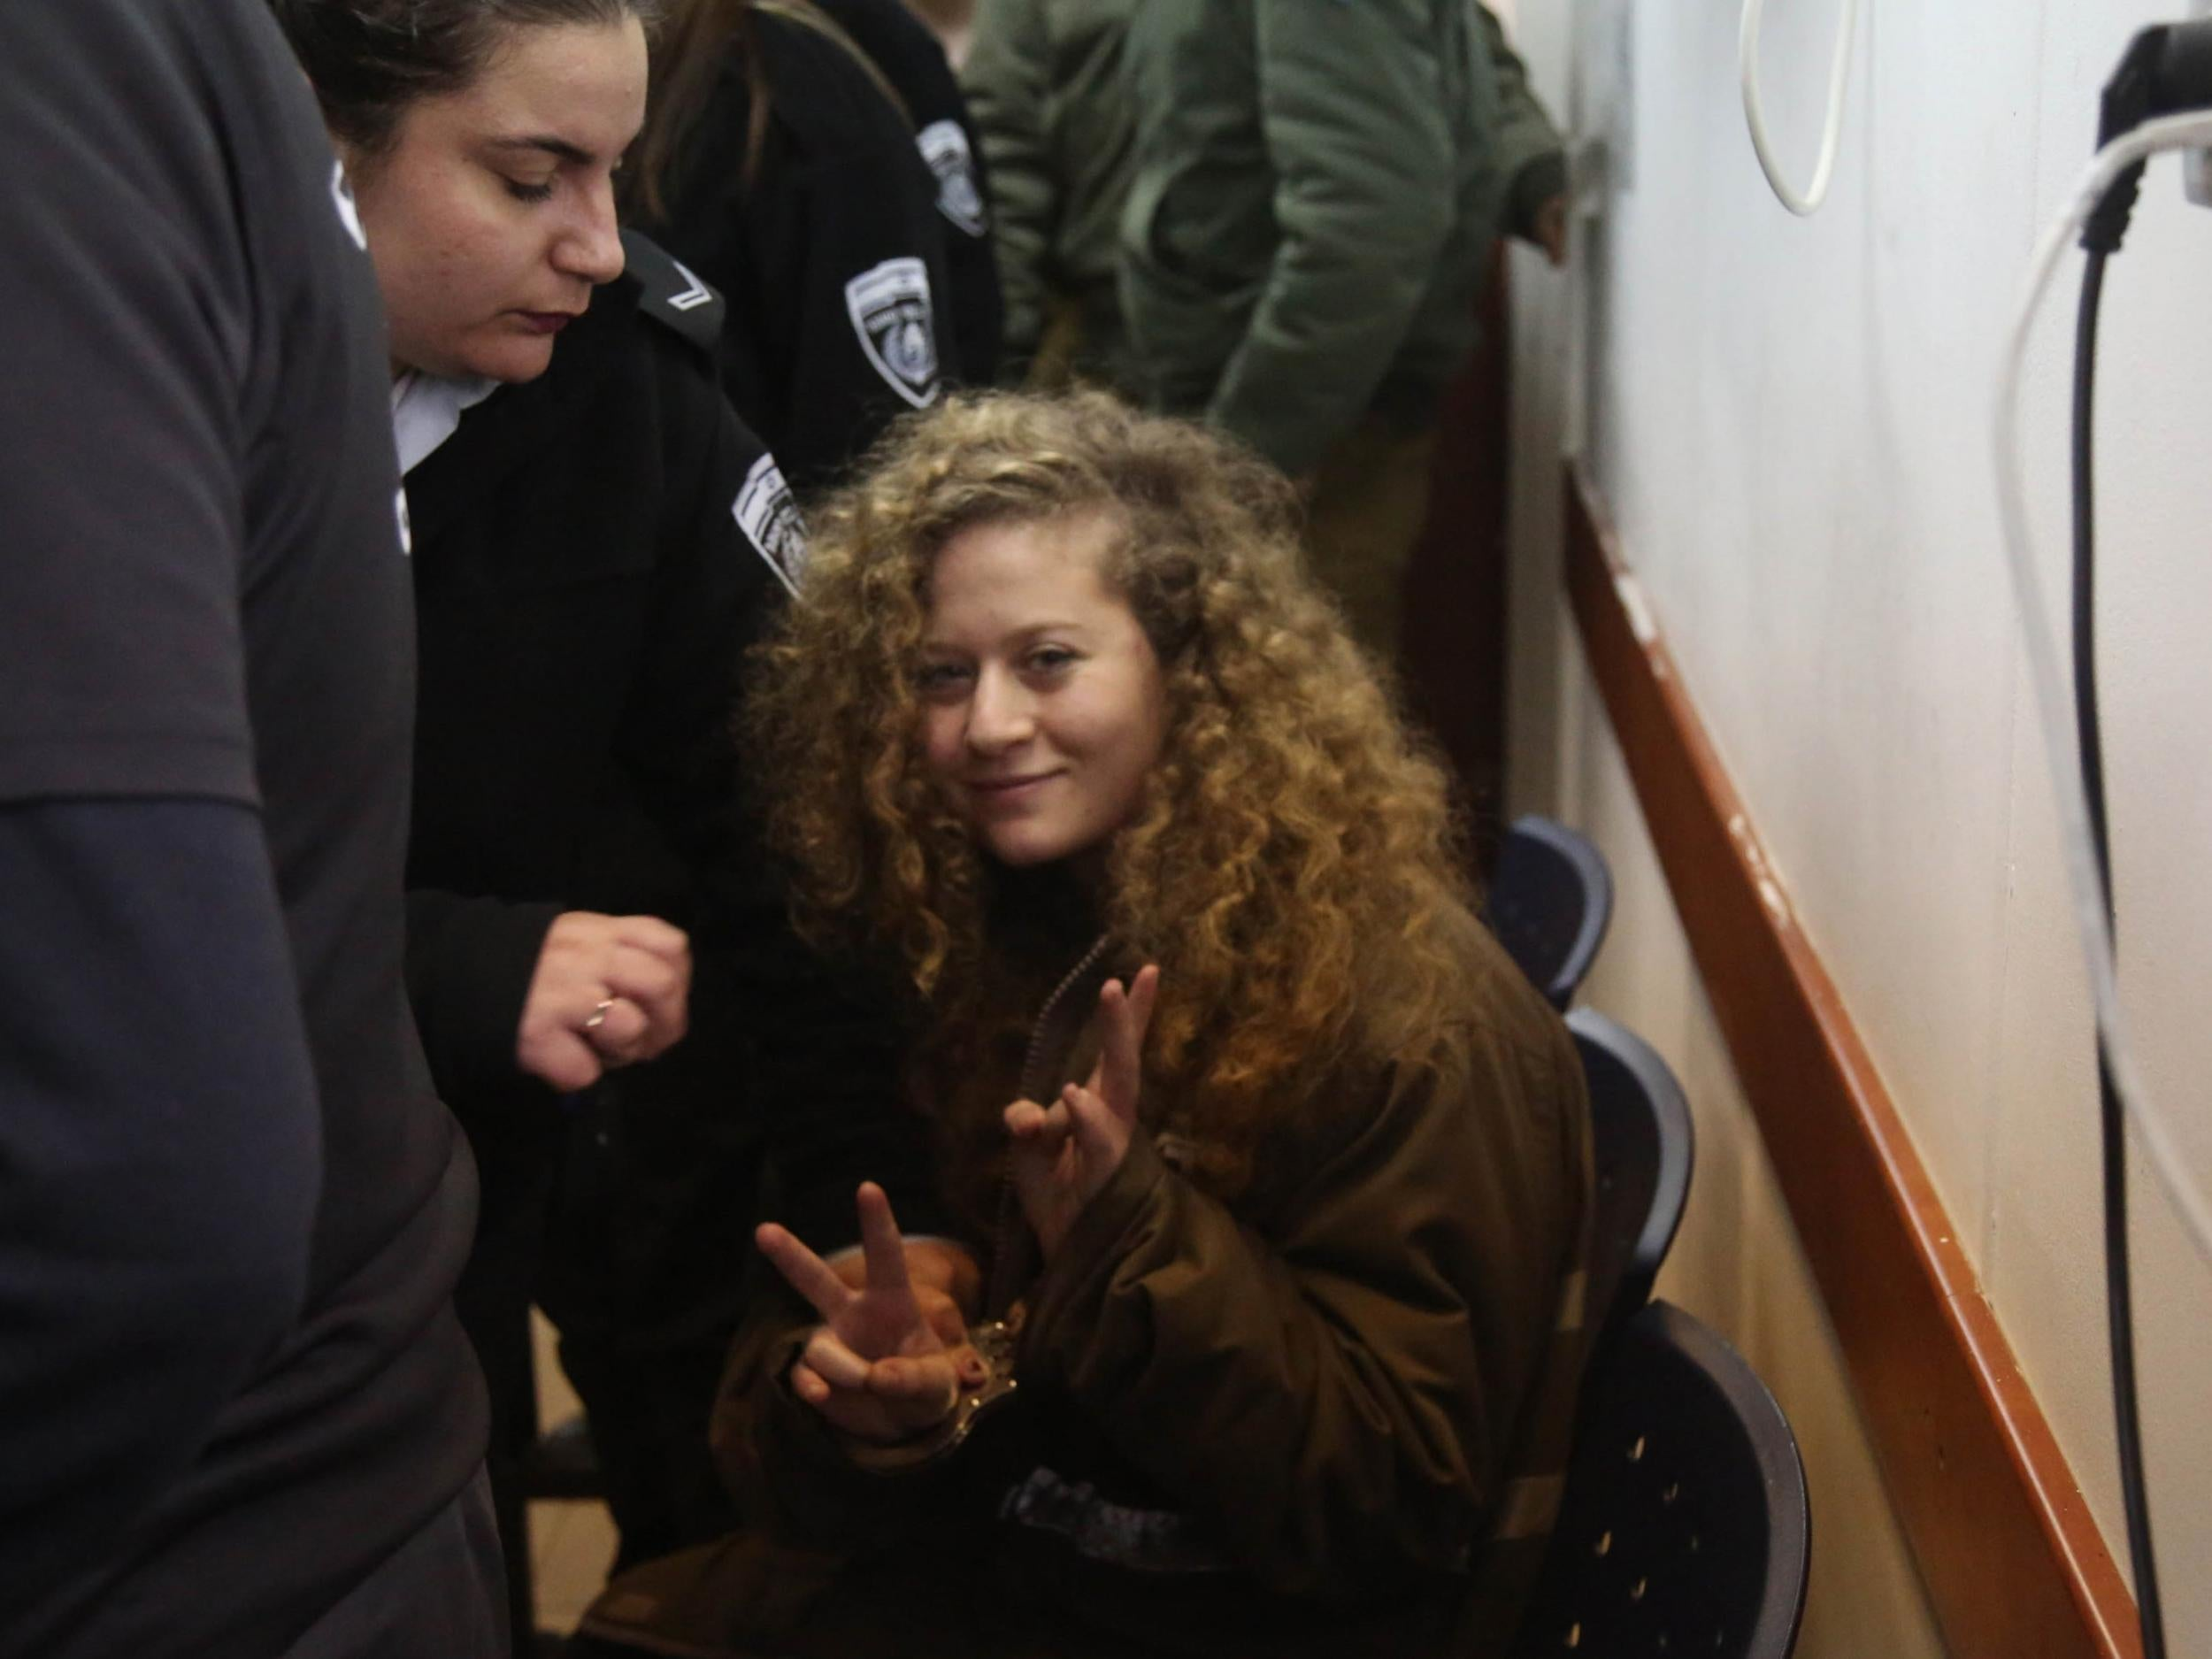 Ahed Tamimi: Who is Palestinian teenage protester and why is she being detained?